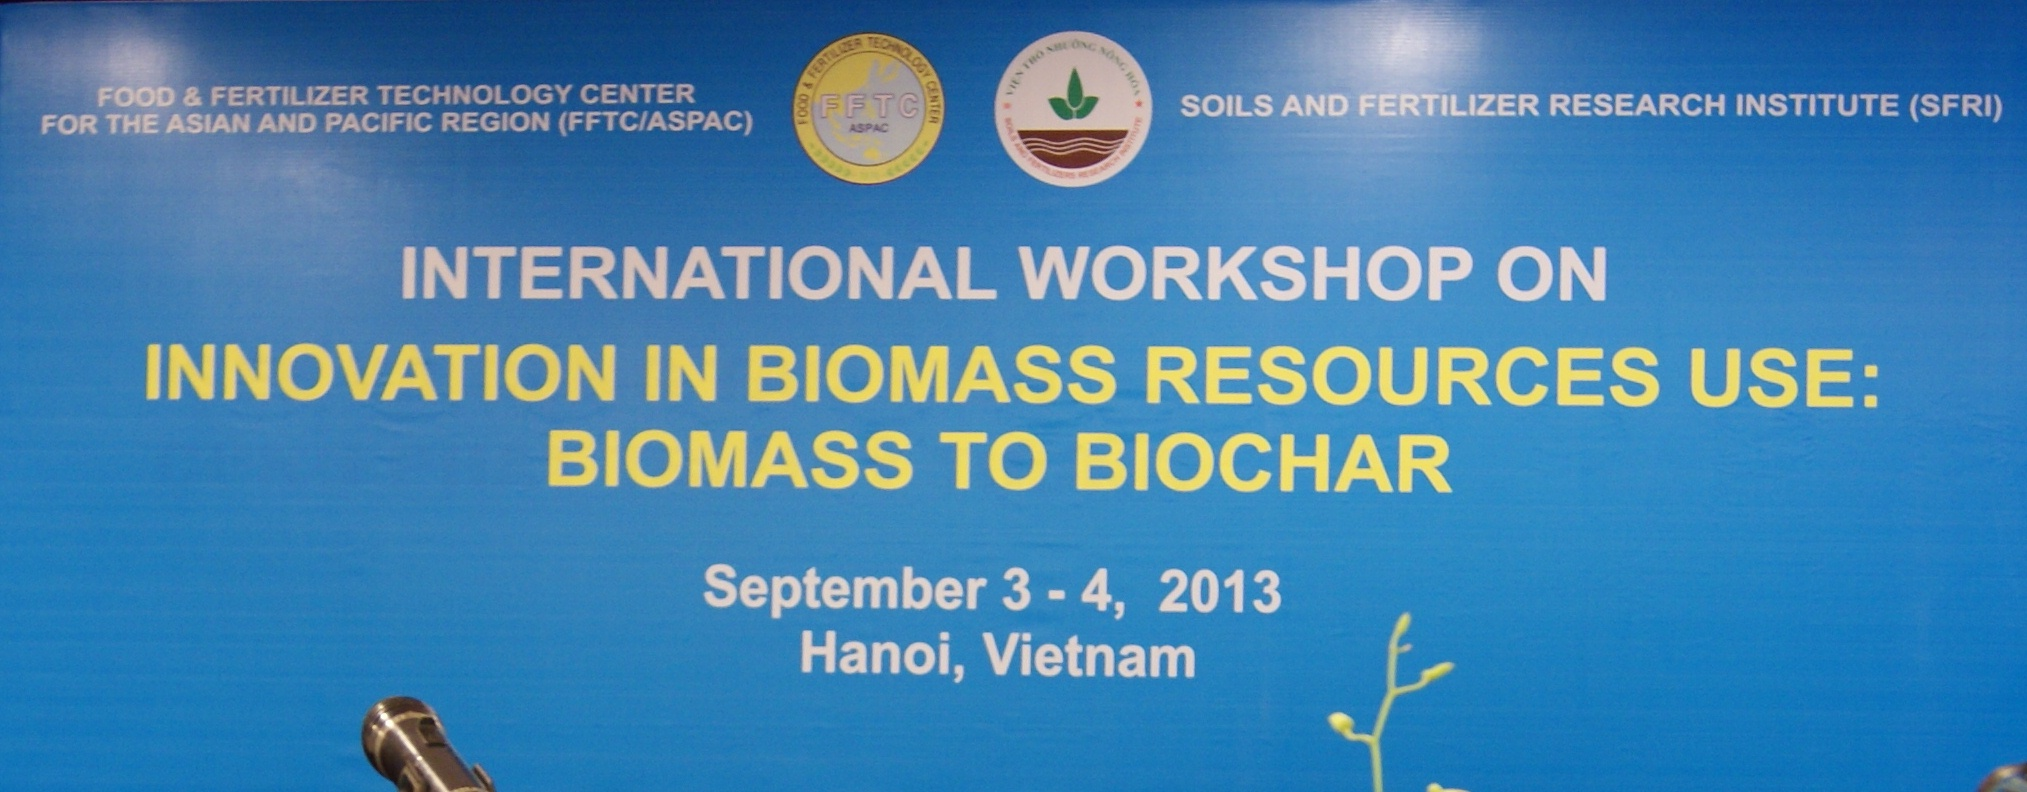 International Workshop on Innovation in Biomass Resources Use: Biomass to Biochar